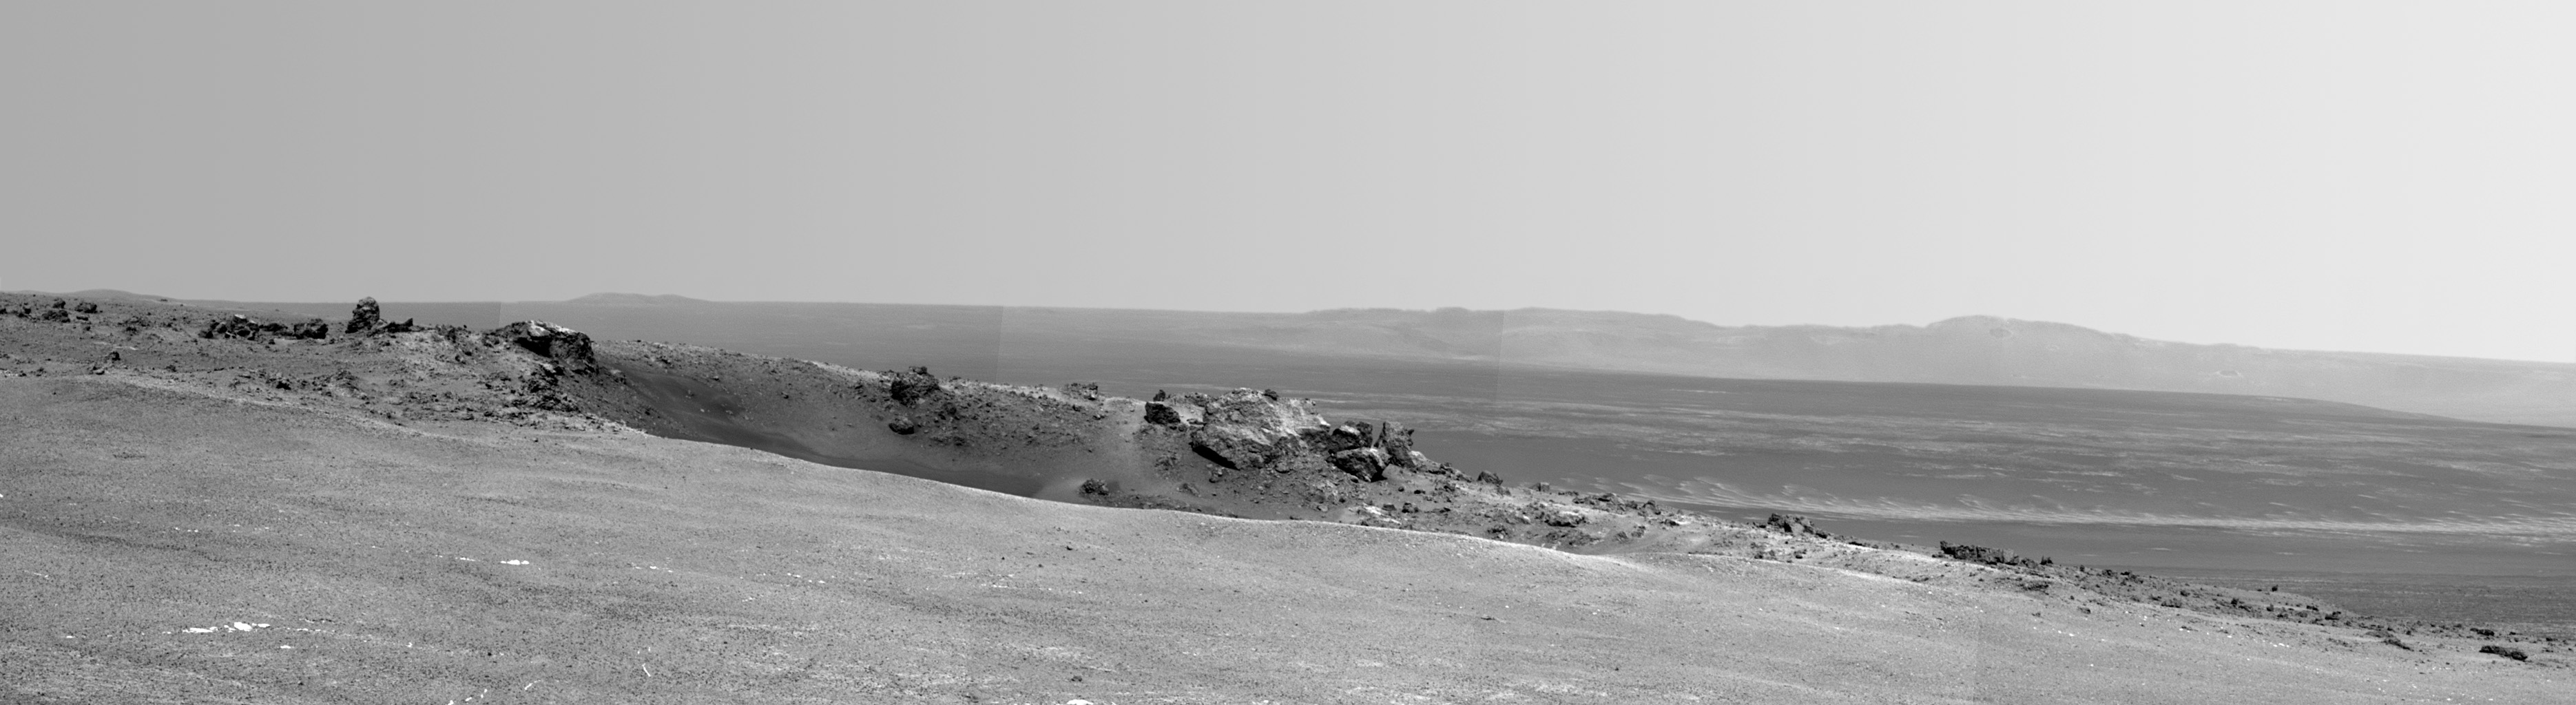 mars rover disappearance - photo #46